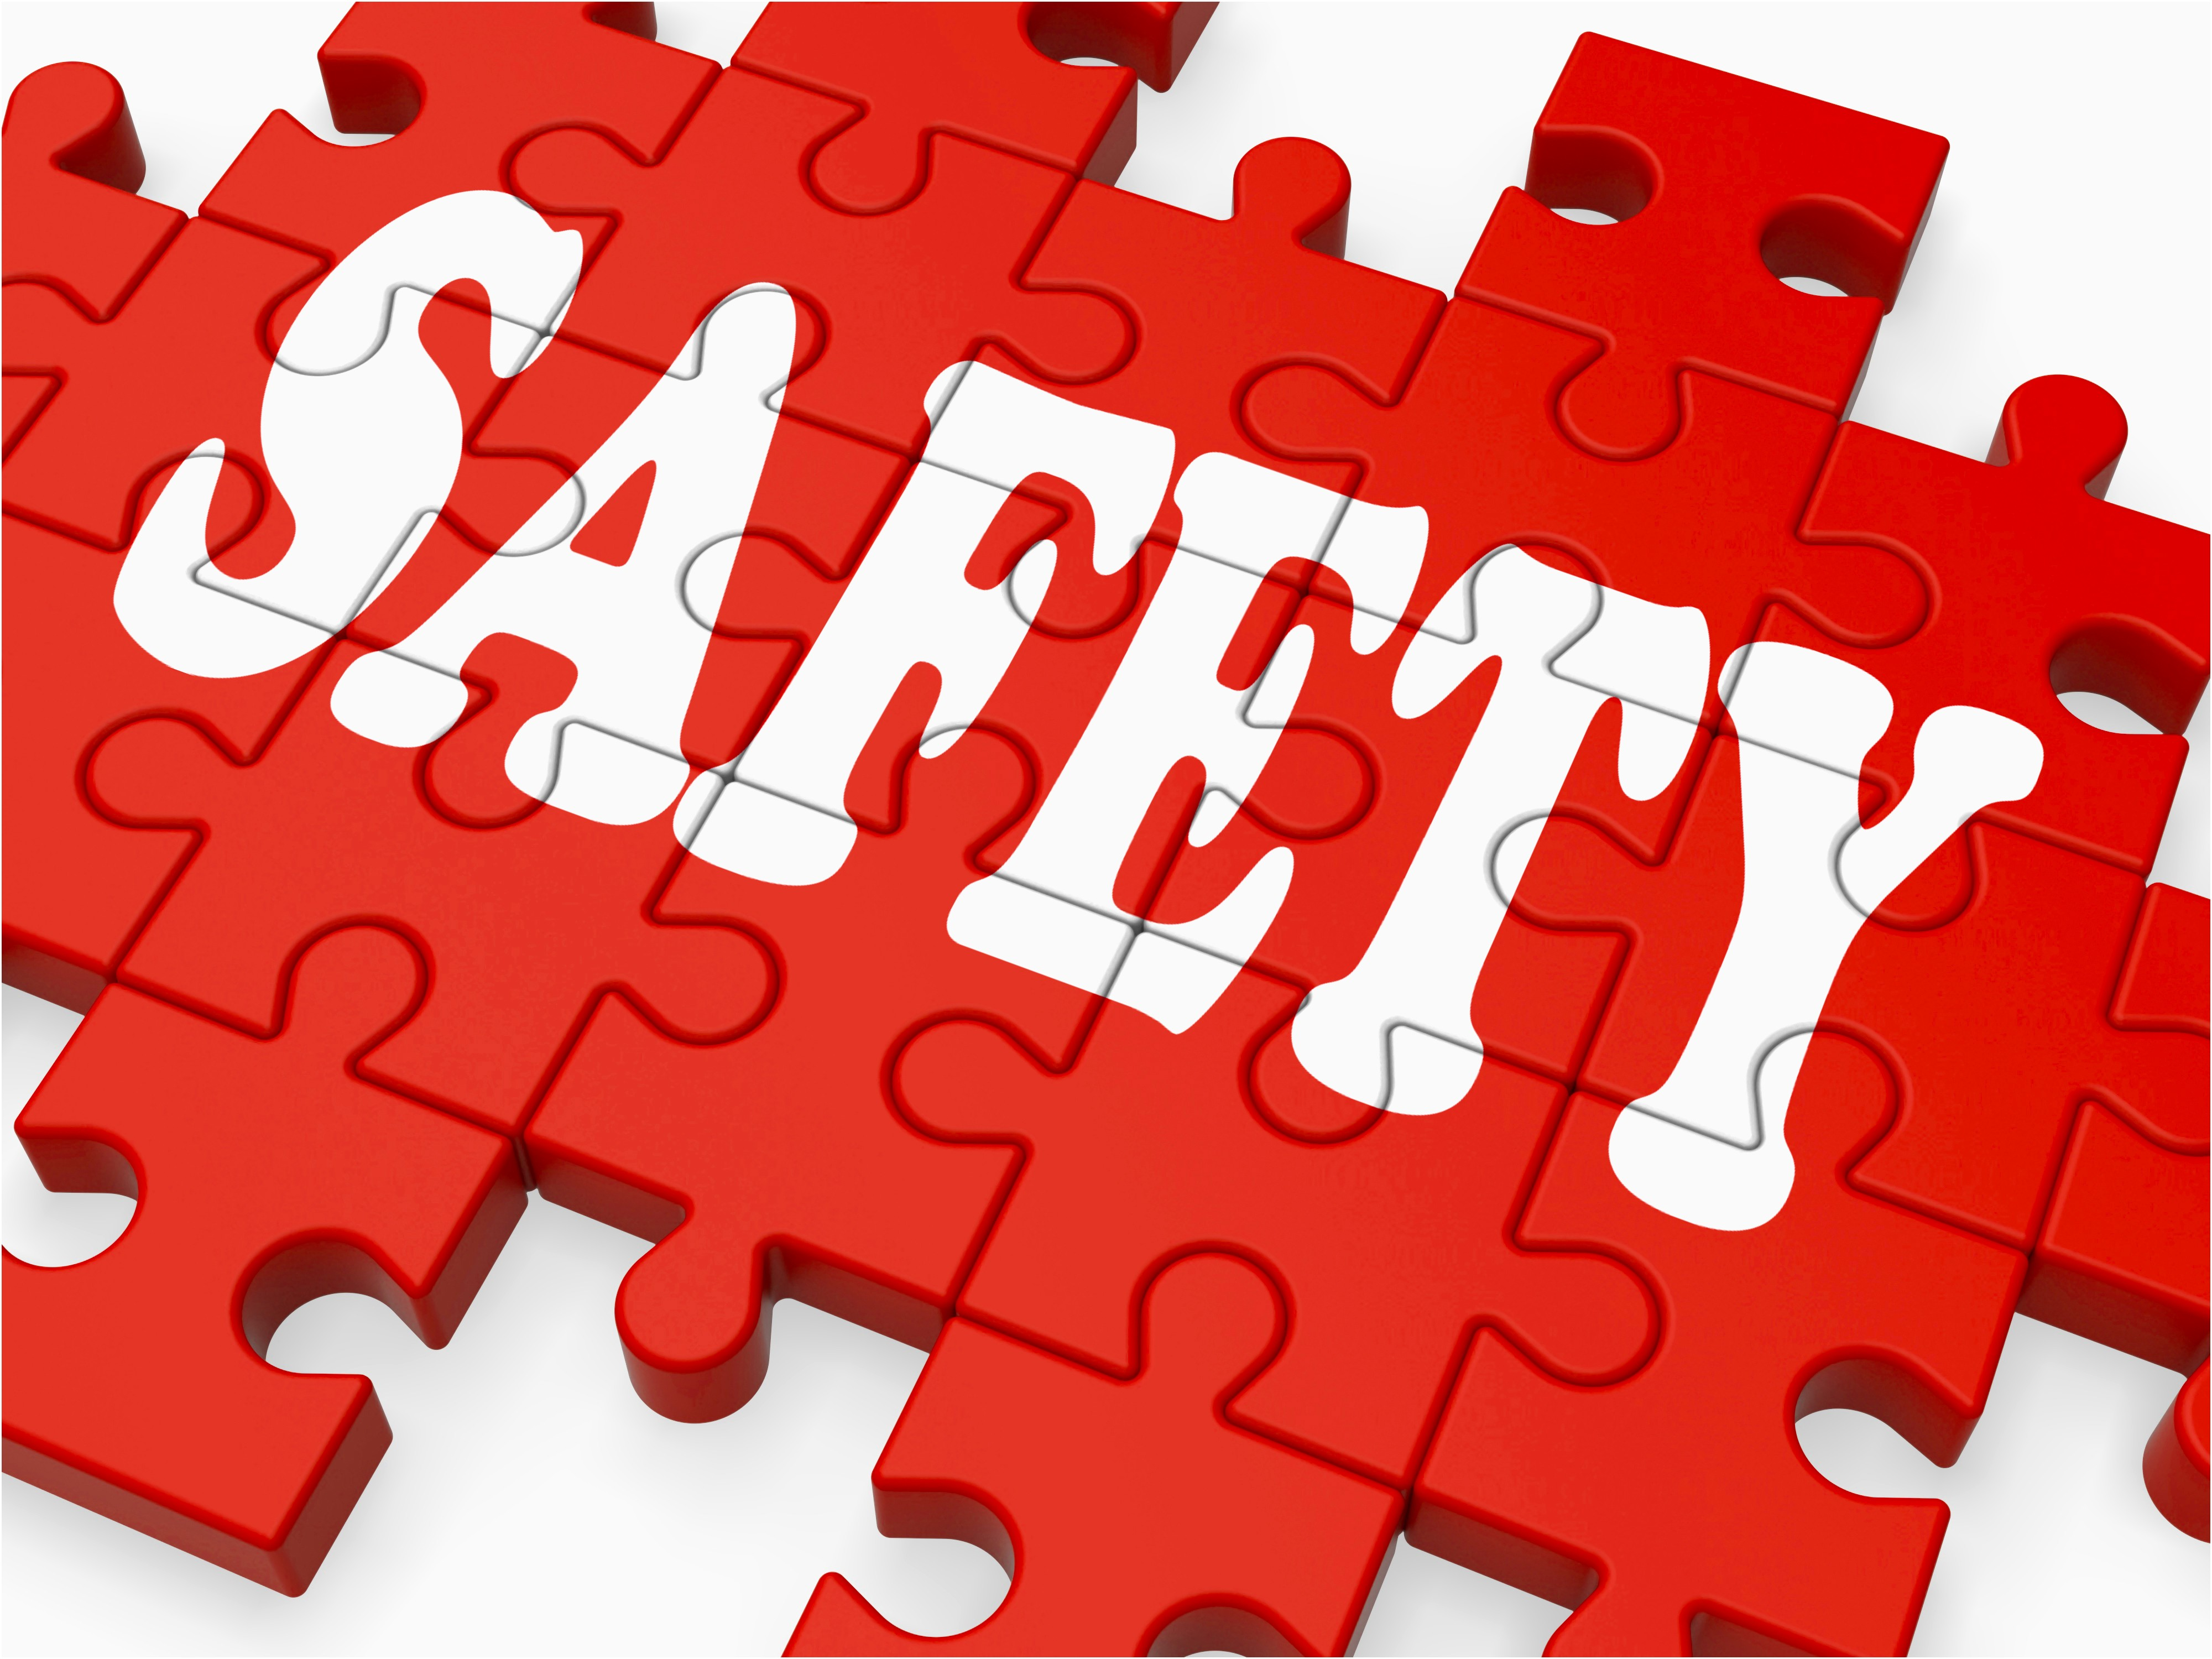 Safety clipart aviation safety. Beautiful workplace clip art